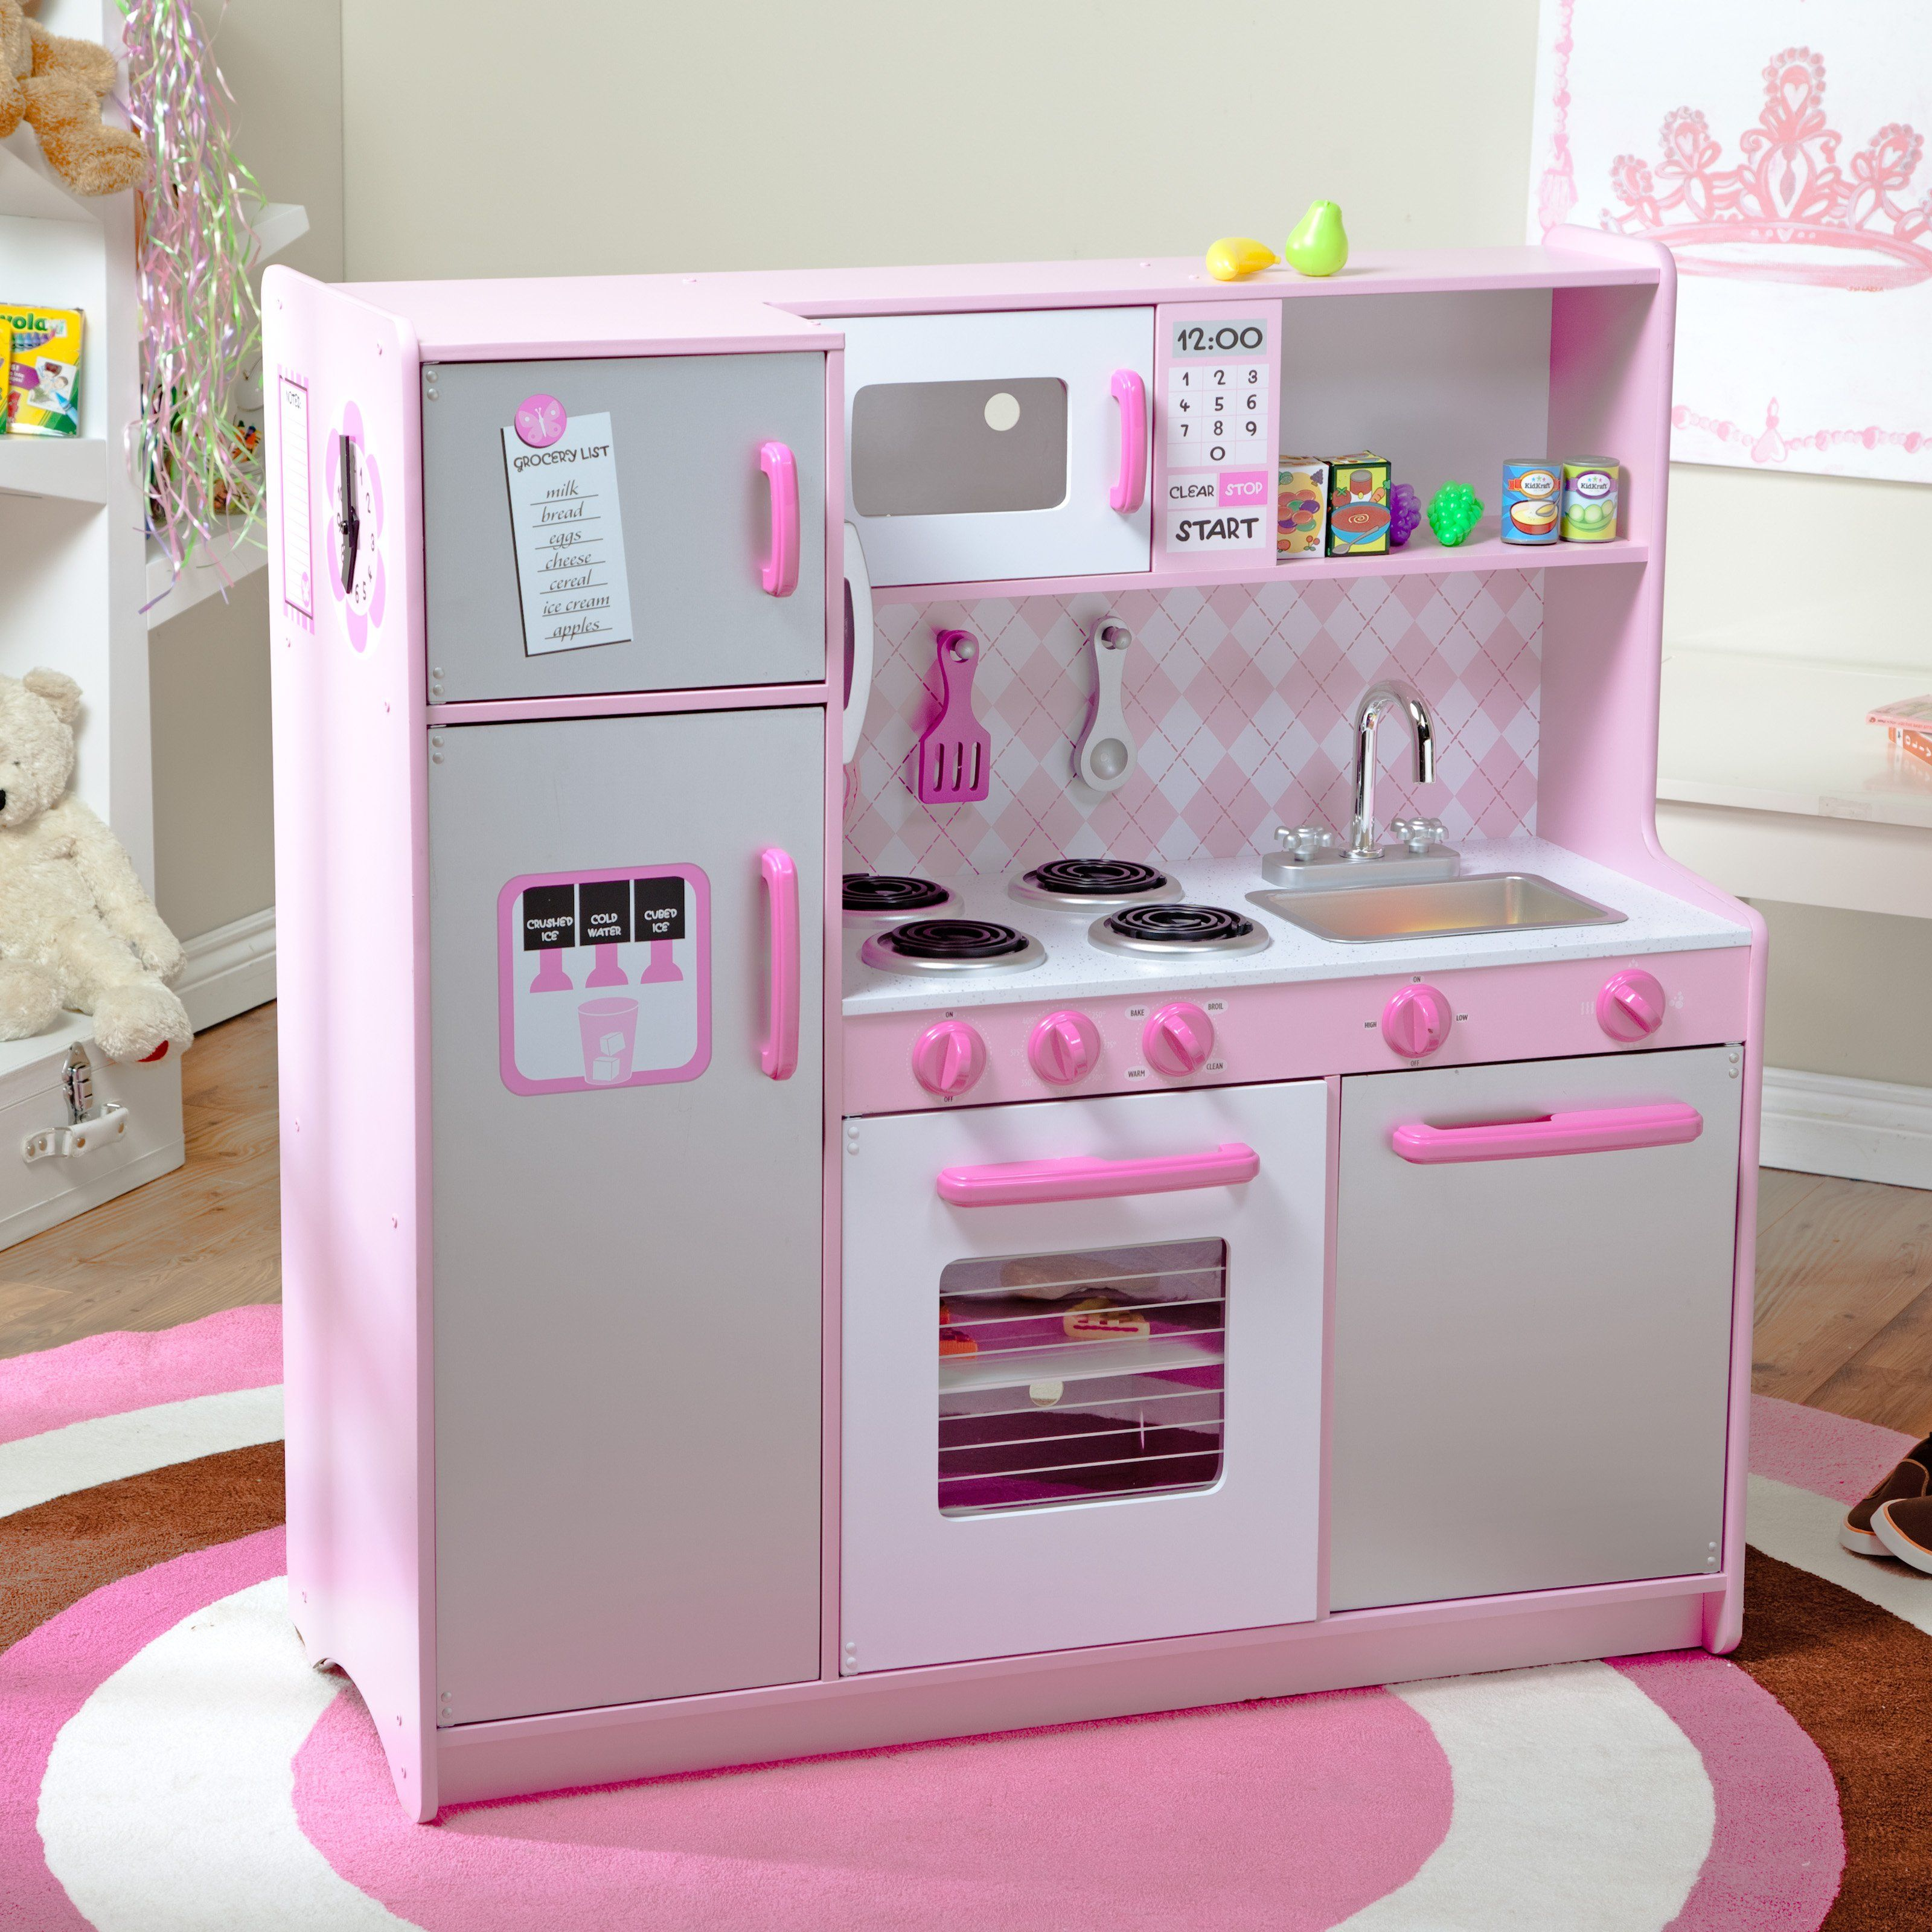 If I Was A Kid I Would So Want This Lol Kids Play Kitchen